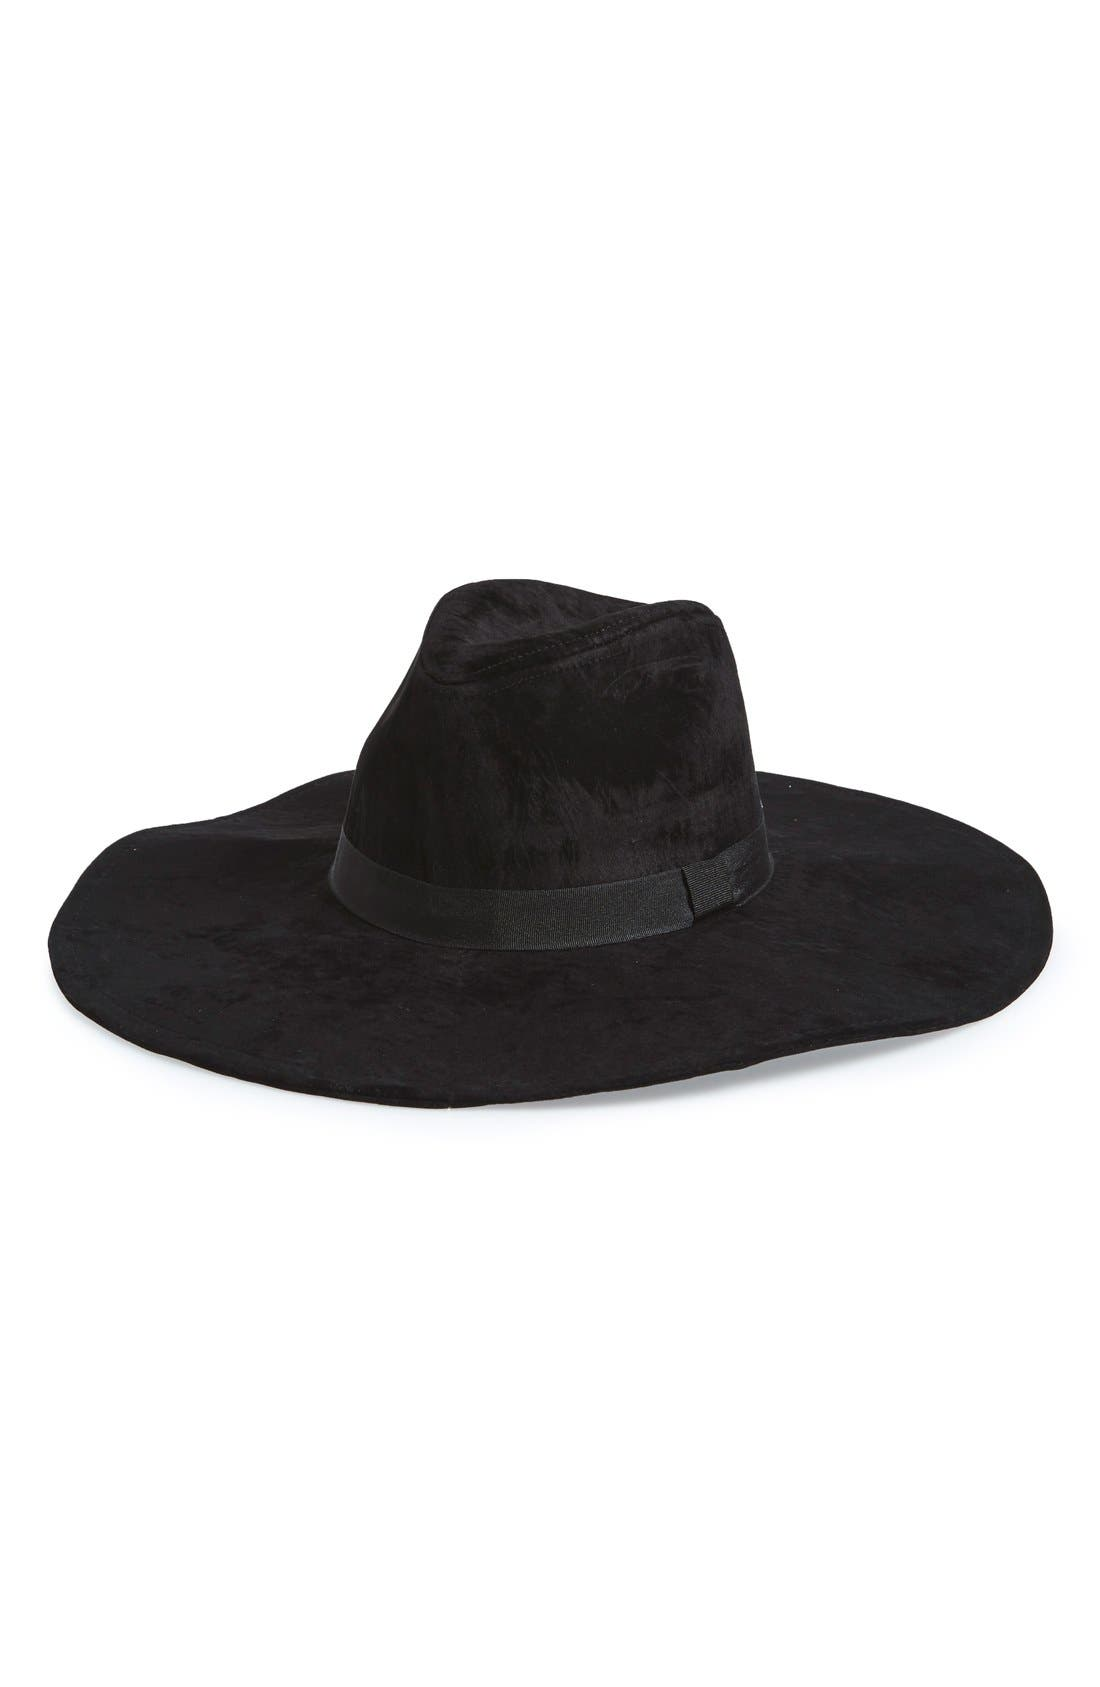 Main Image - Amici Accessories Floppy Faux Suede Fedora